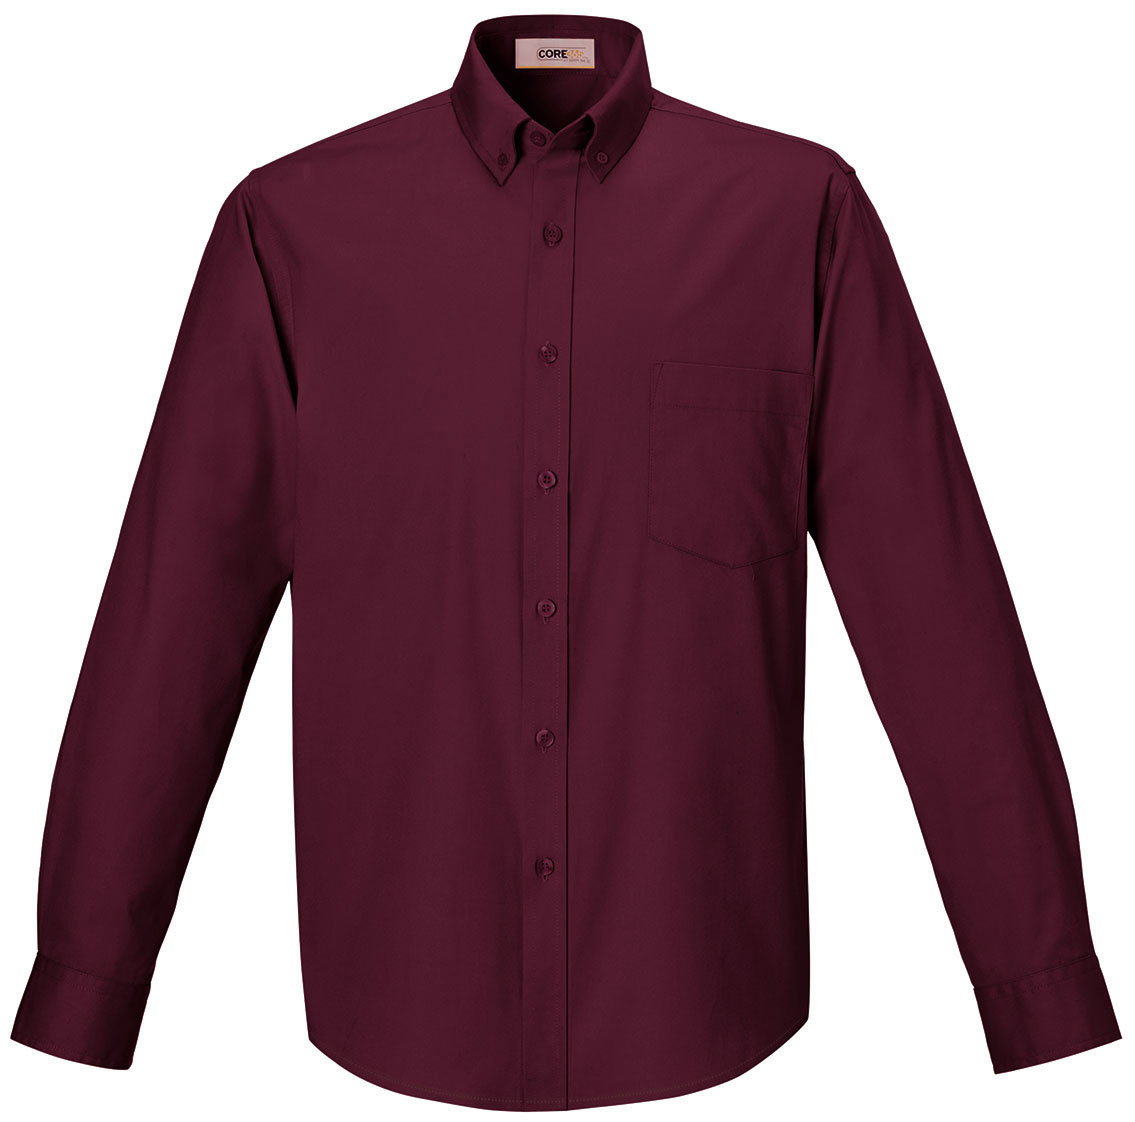 Picture of CORE365 Men's Long Sleeve Twill Shirts